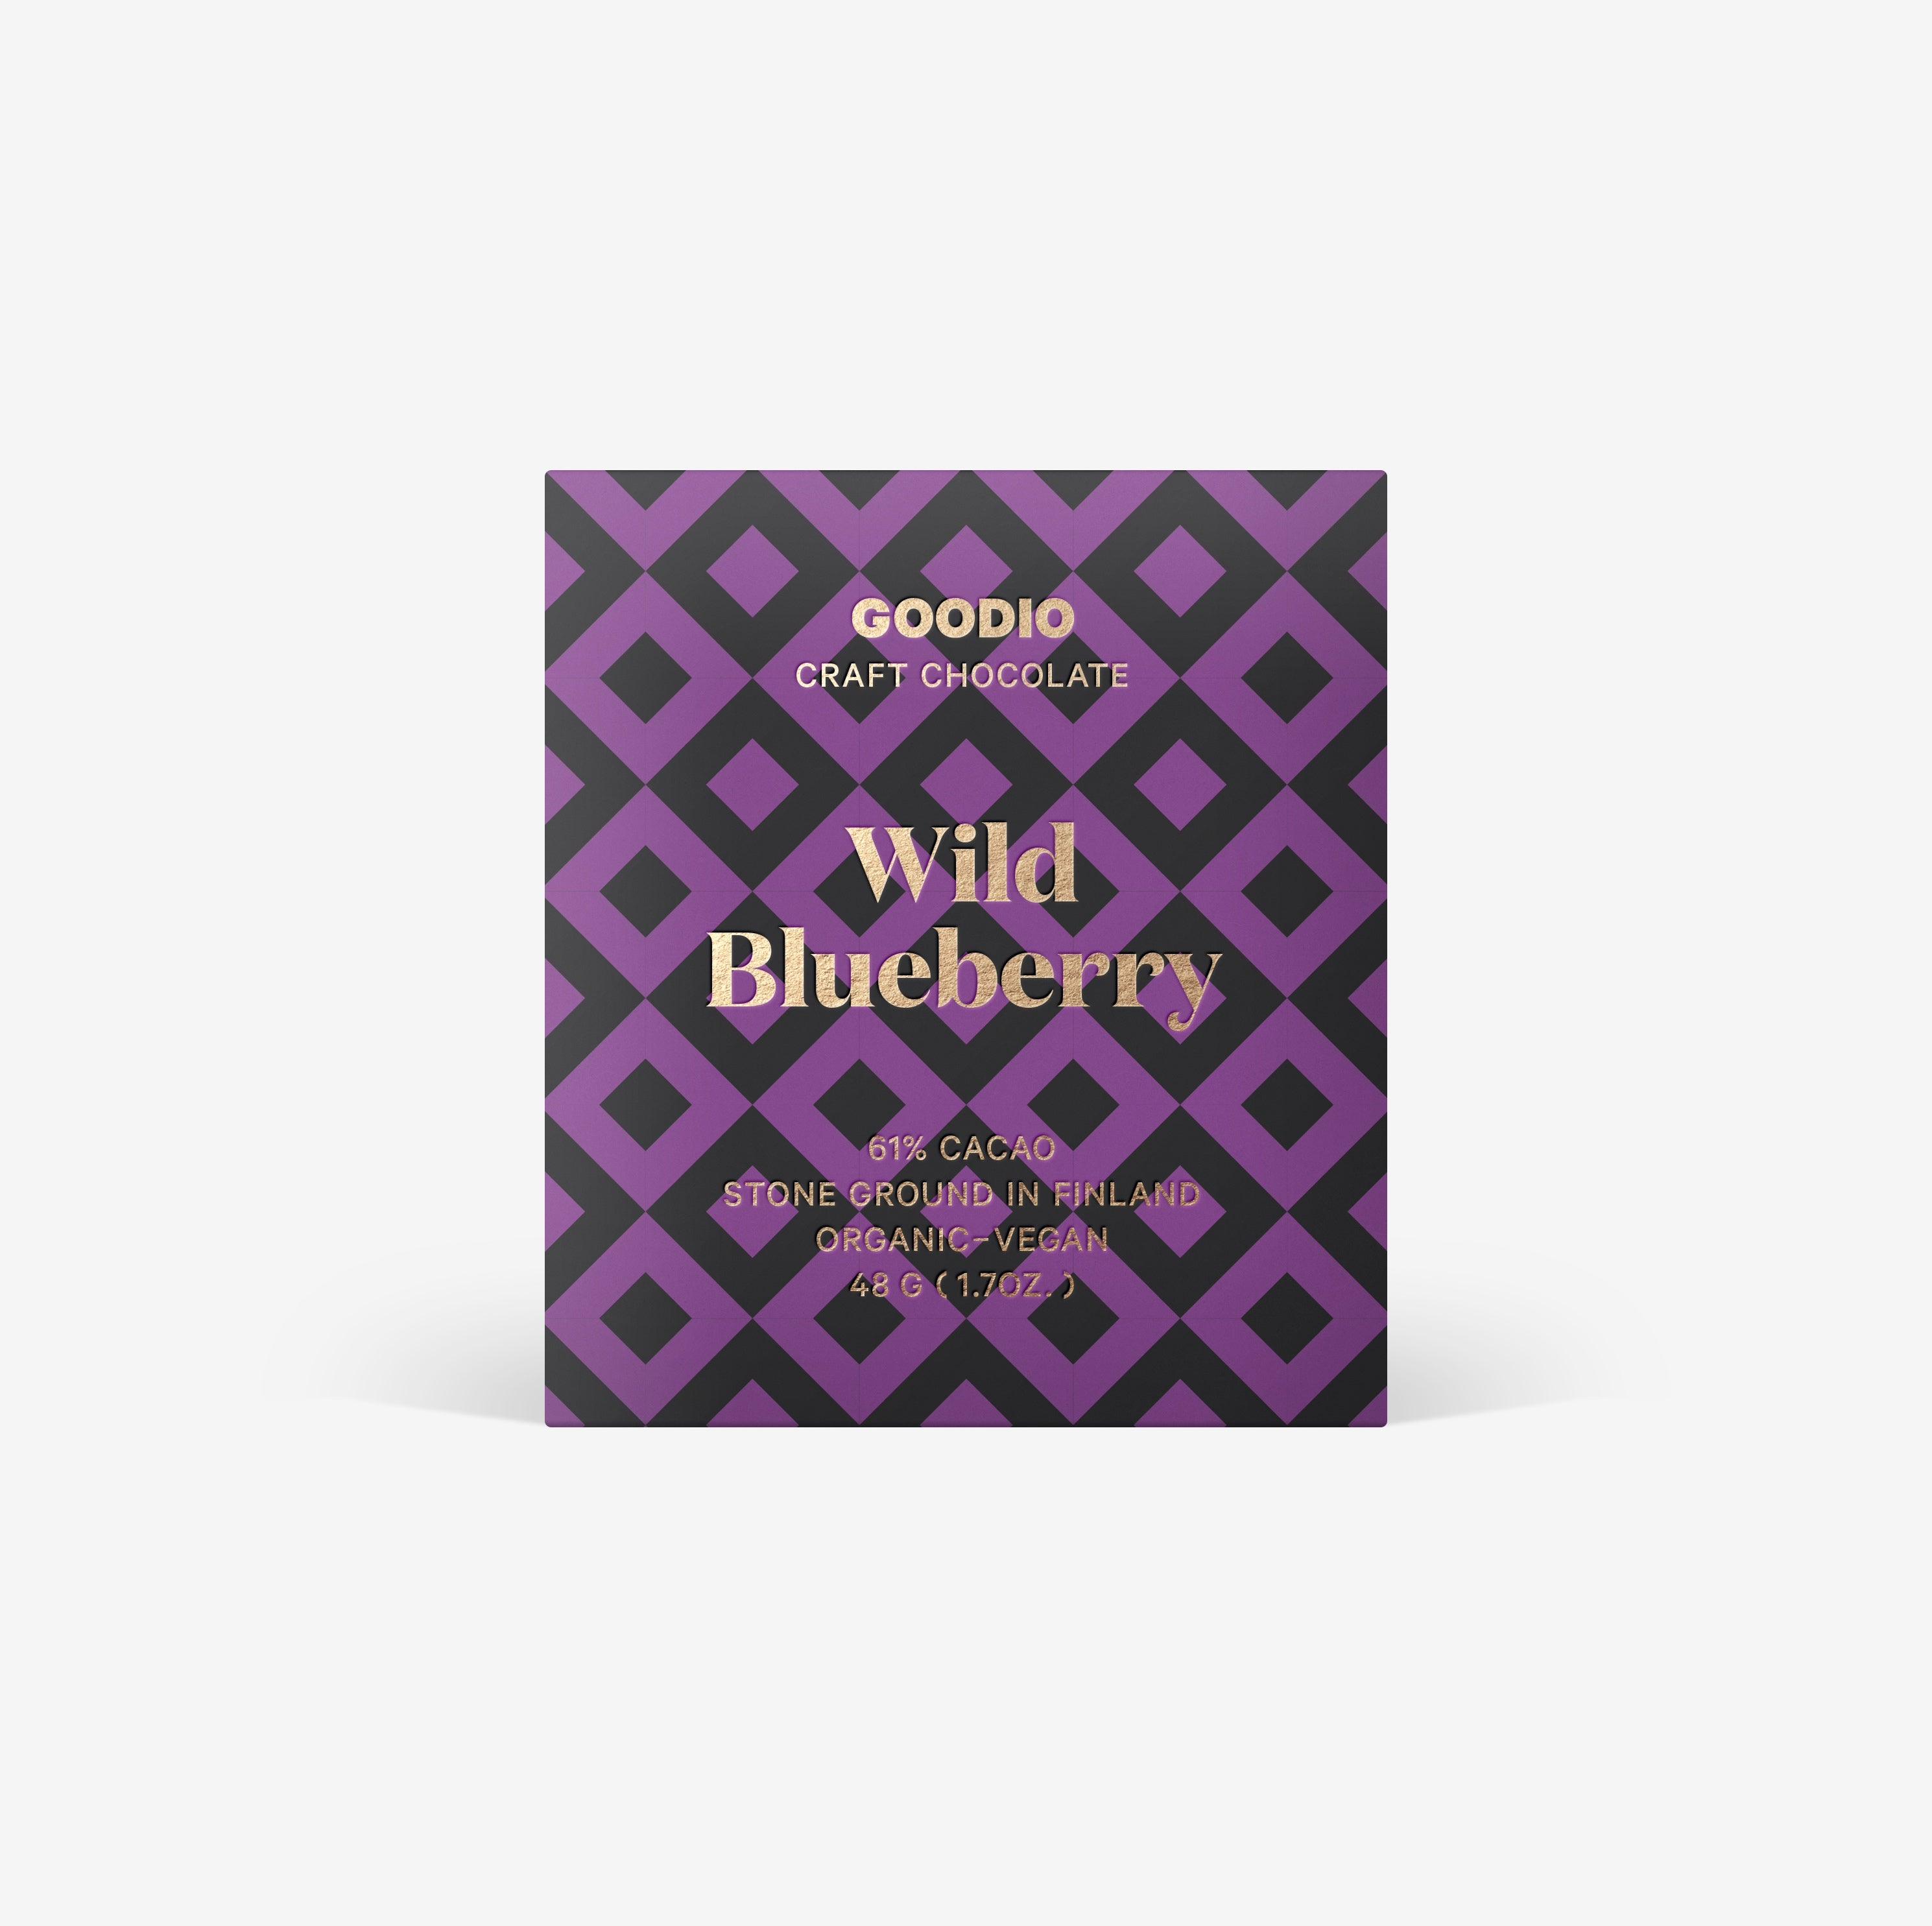 Organic & Vegan Wild Blueberry Chocolate 61%